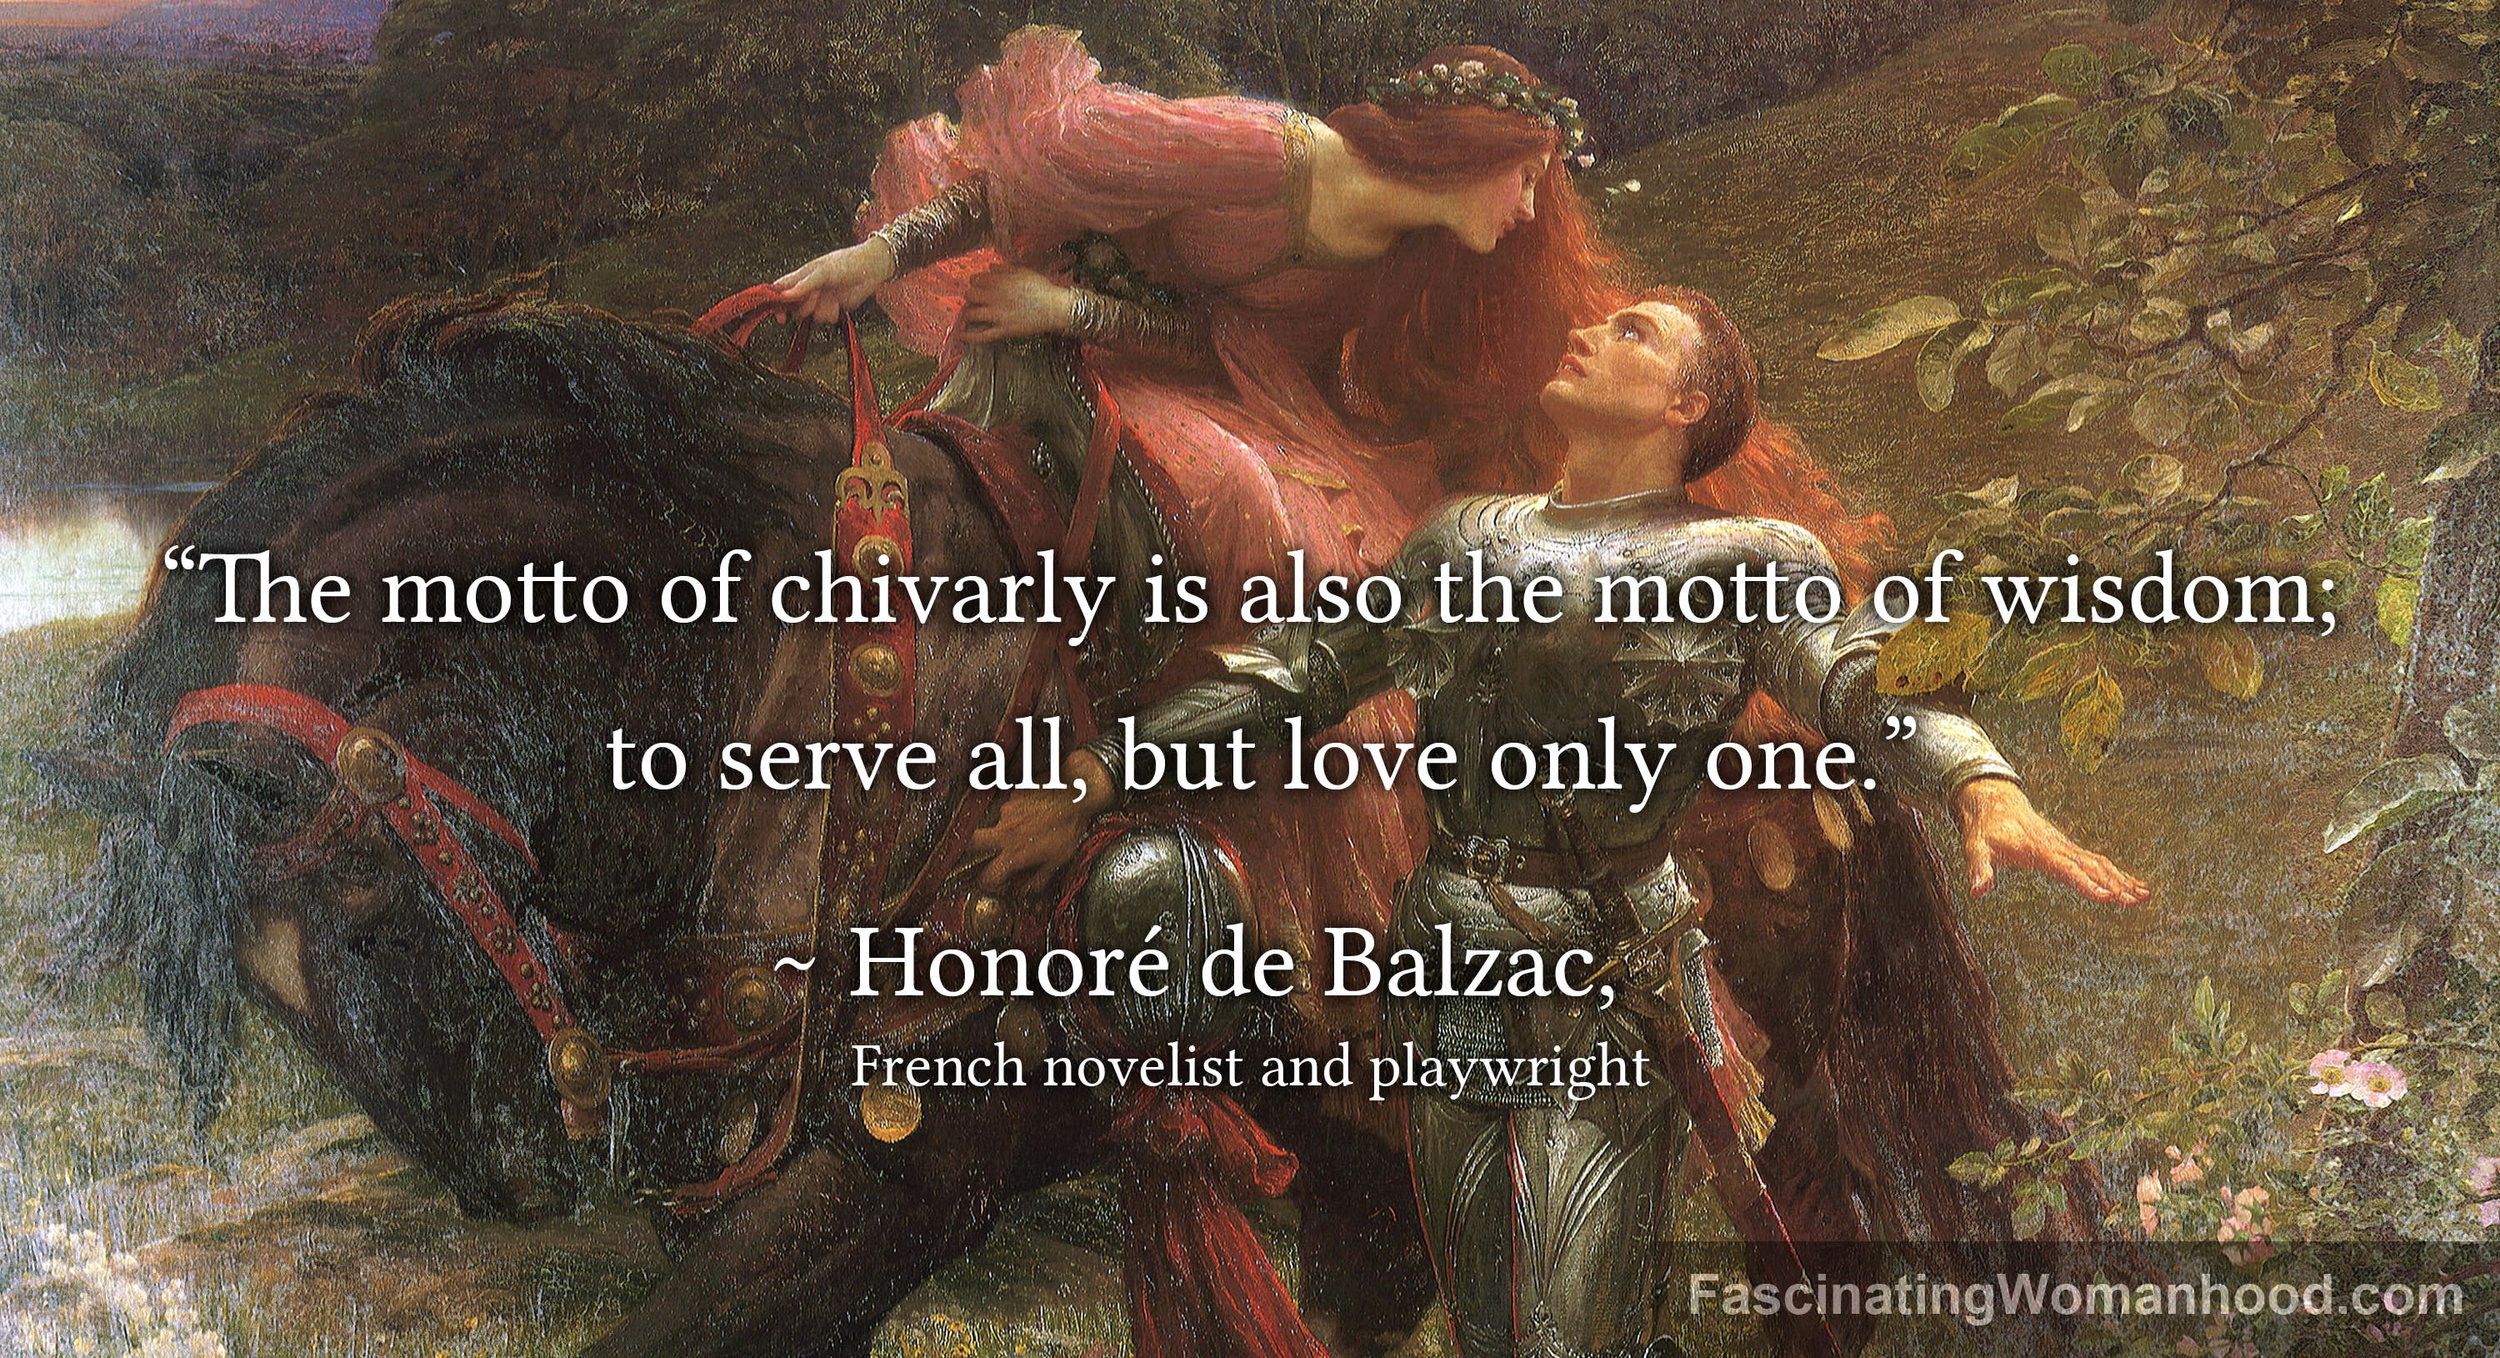 A Quote by Balzac.jpg